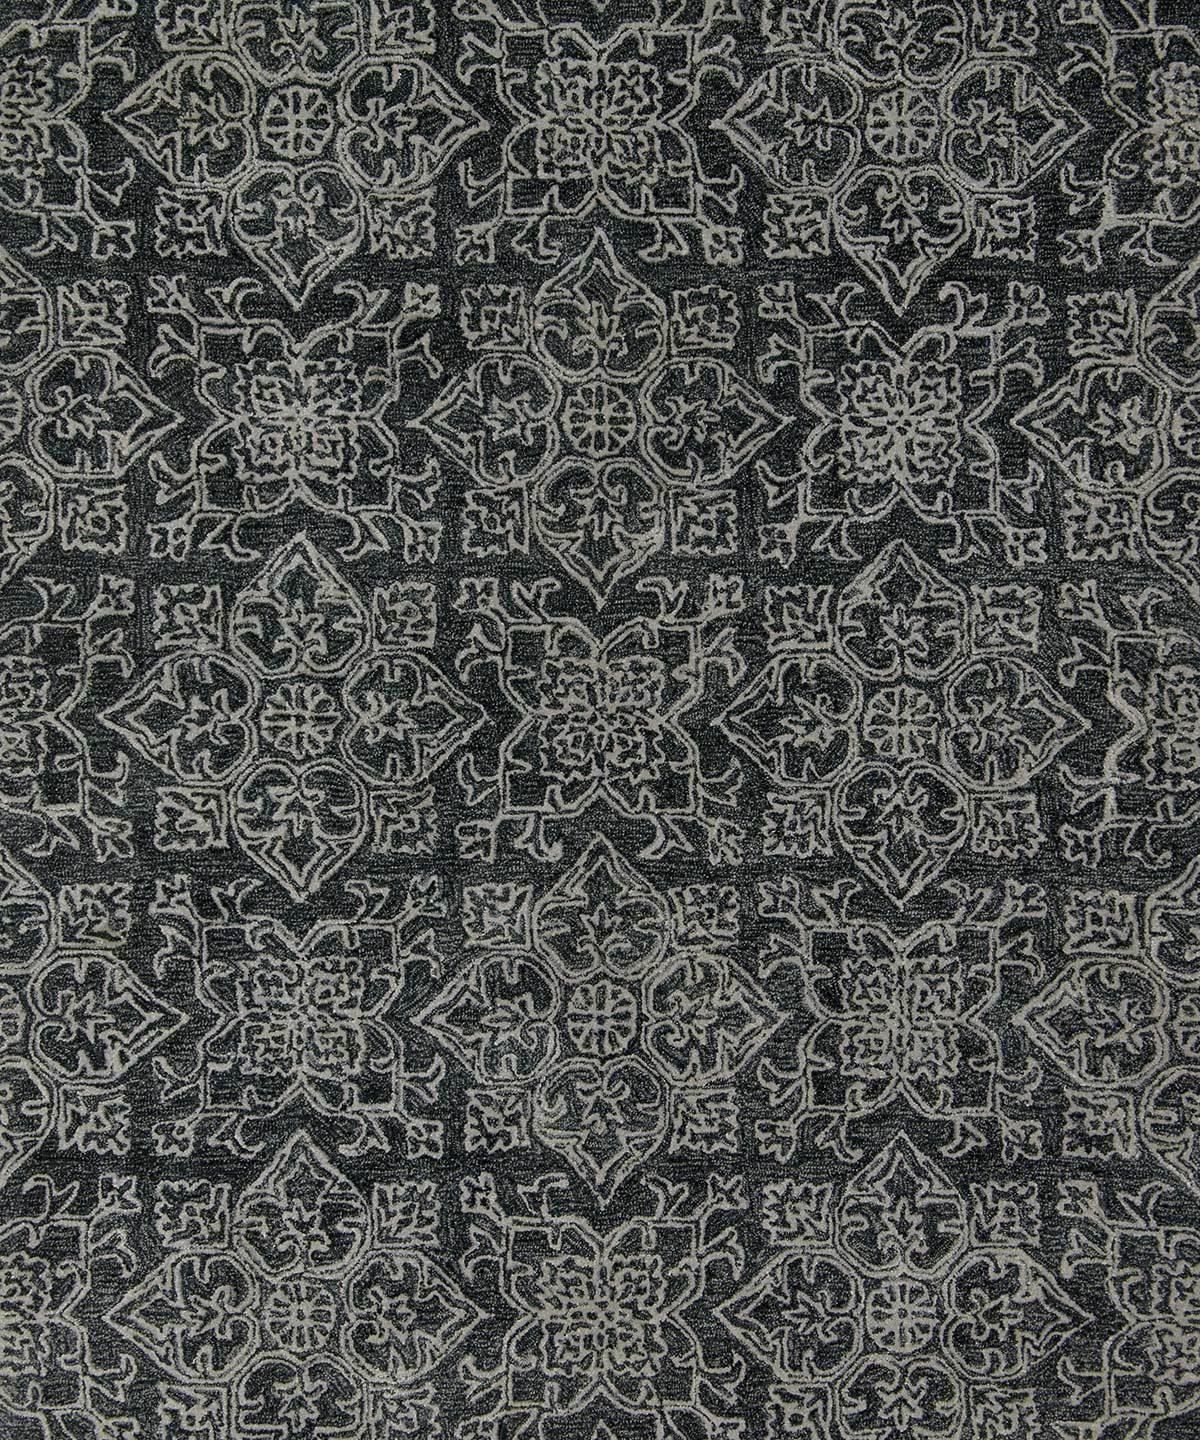 Filigree Rug in Charcoal by Loloi | TRNK